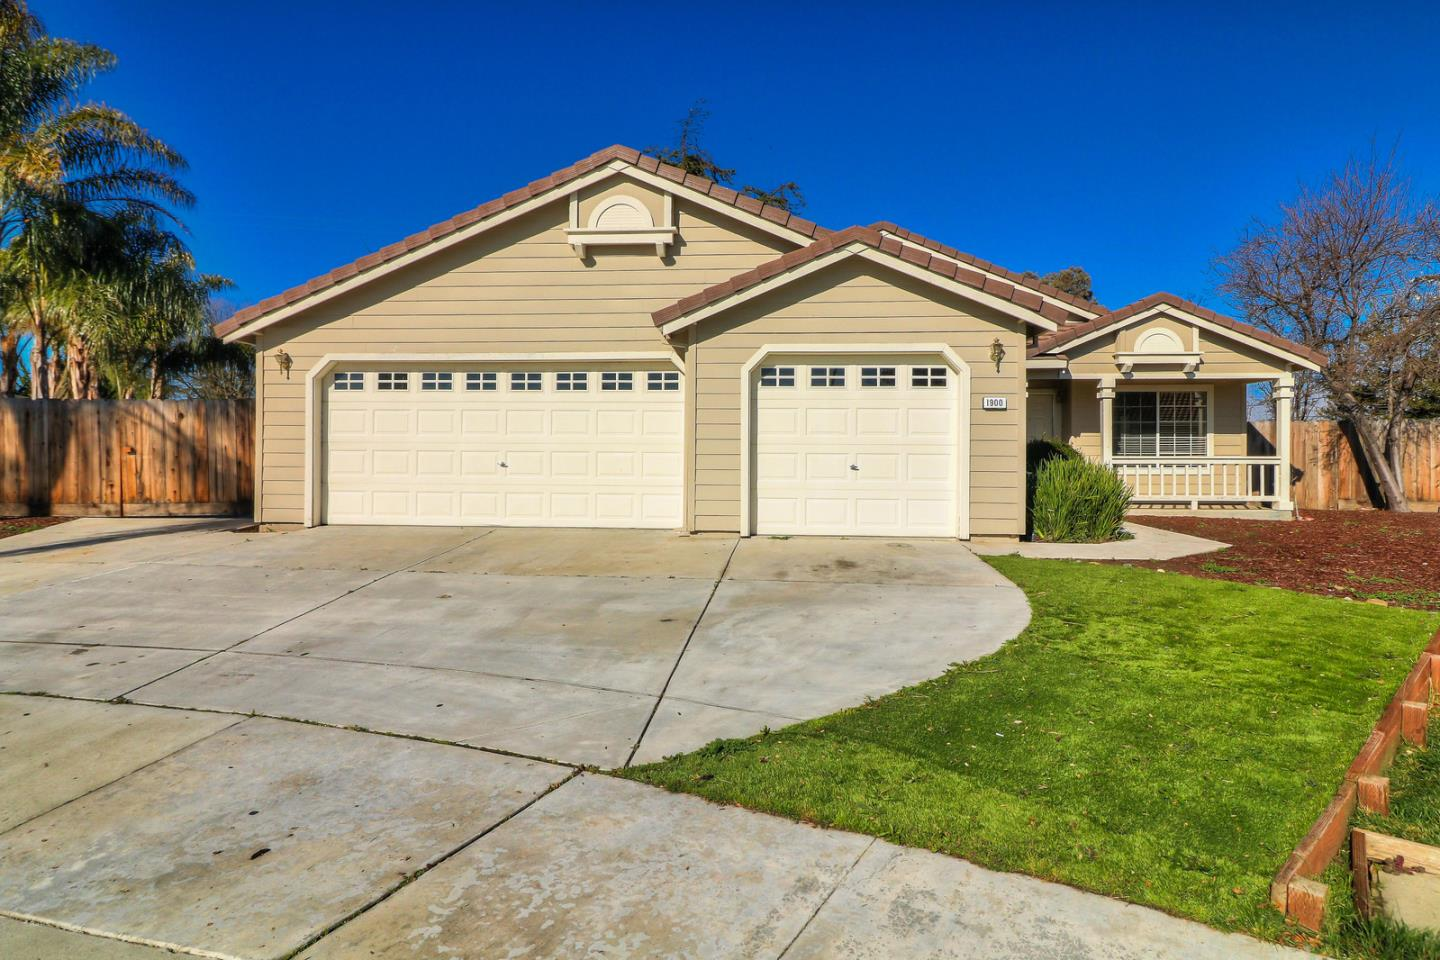 Detail Gallery Image 1 of 1 For 1900 Porter Cir, Hollister, CA, 95023 - 4 Beds | 2 Baths